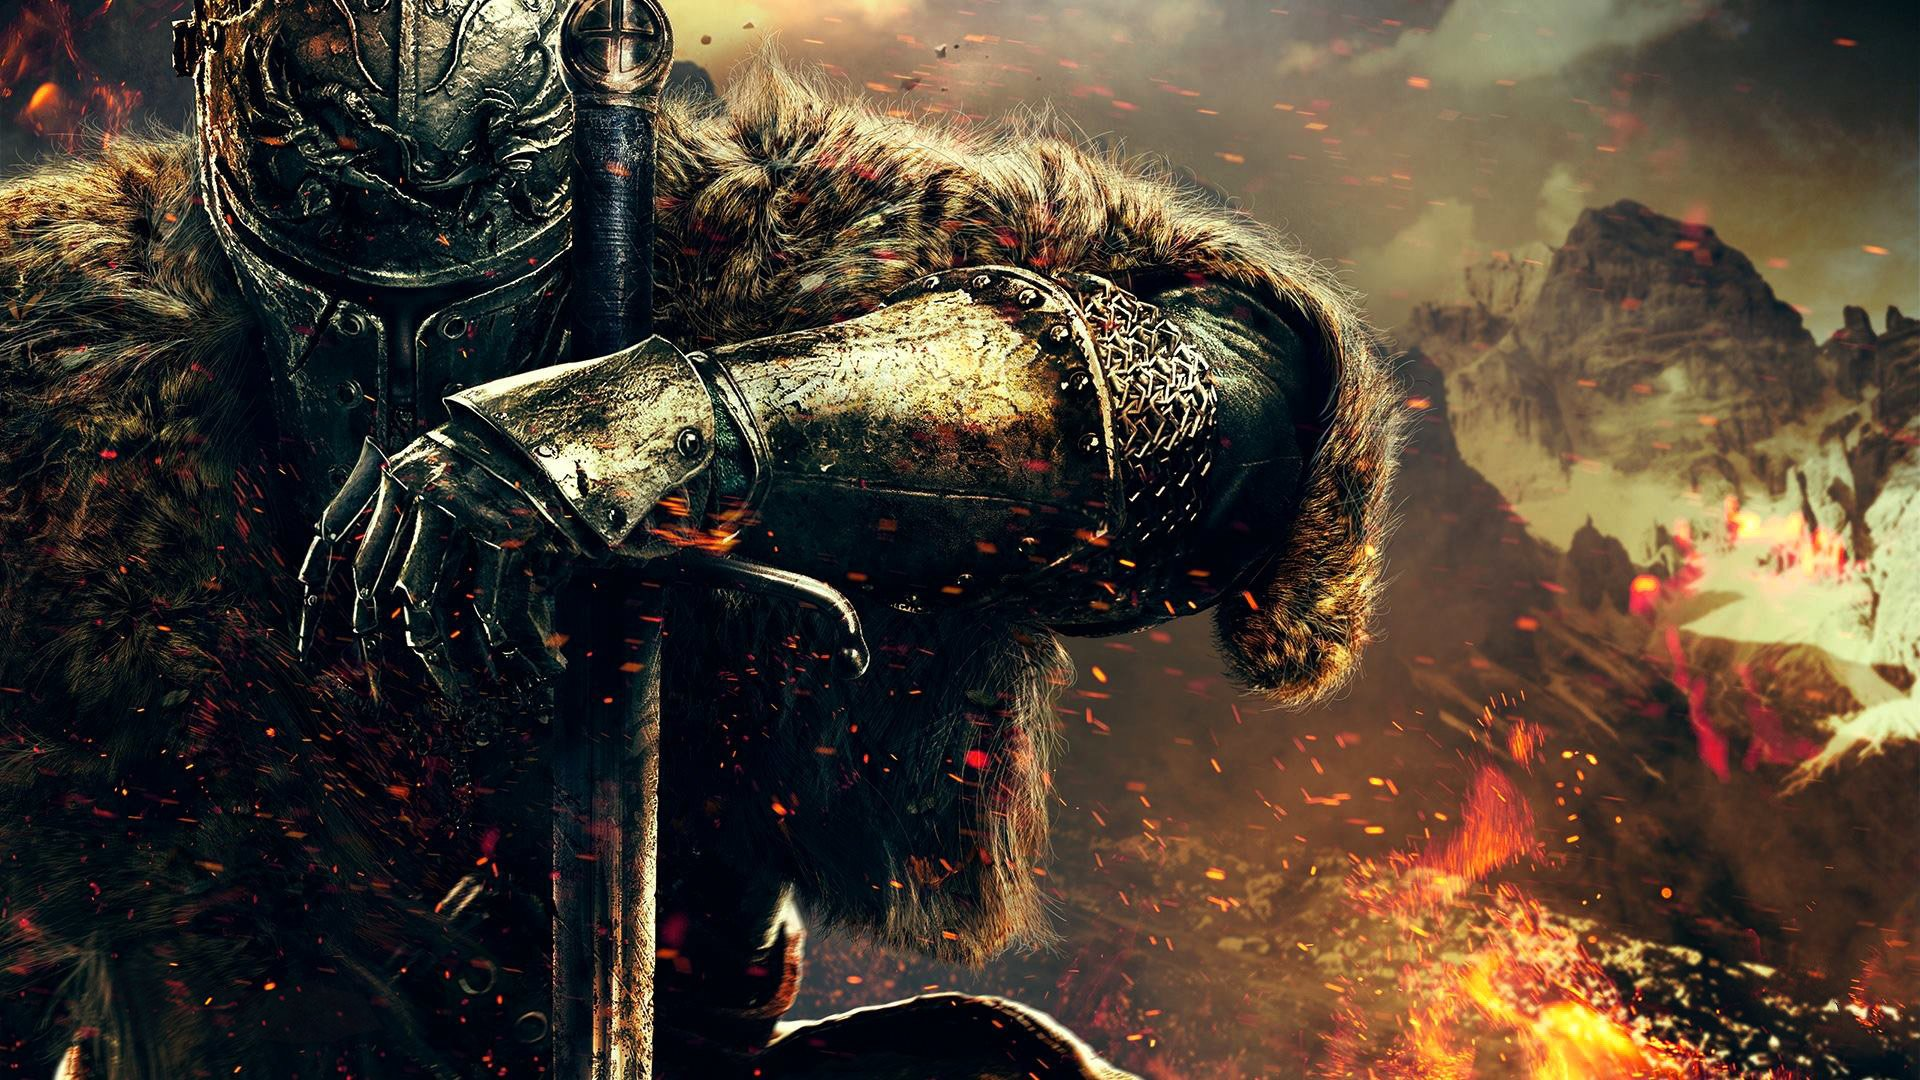 dark souls ii dark souls 2 воин рыцарь шлем броня мех рука from software namco bandai games